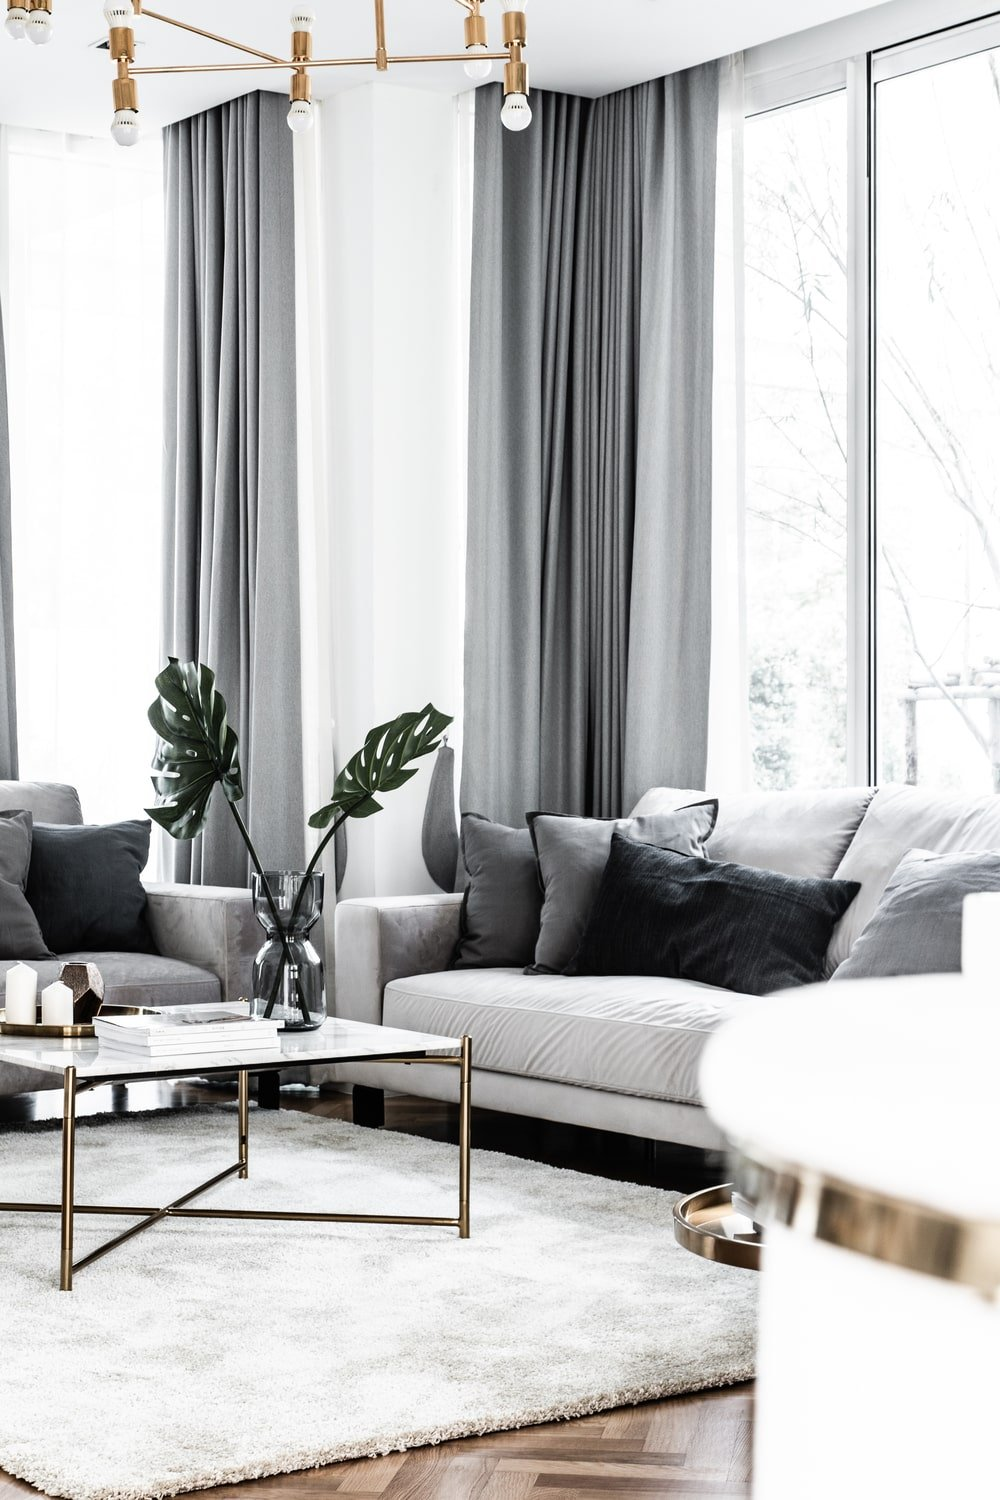 The family room is brightened by the surrounding tall windows paired with gray curtains.